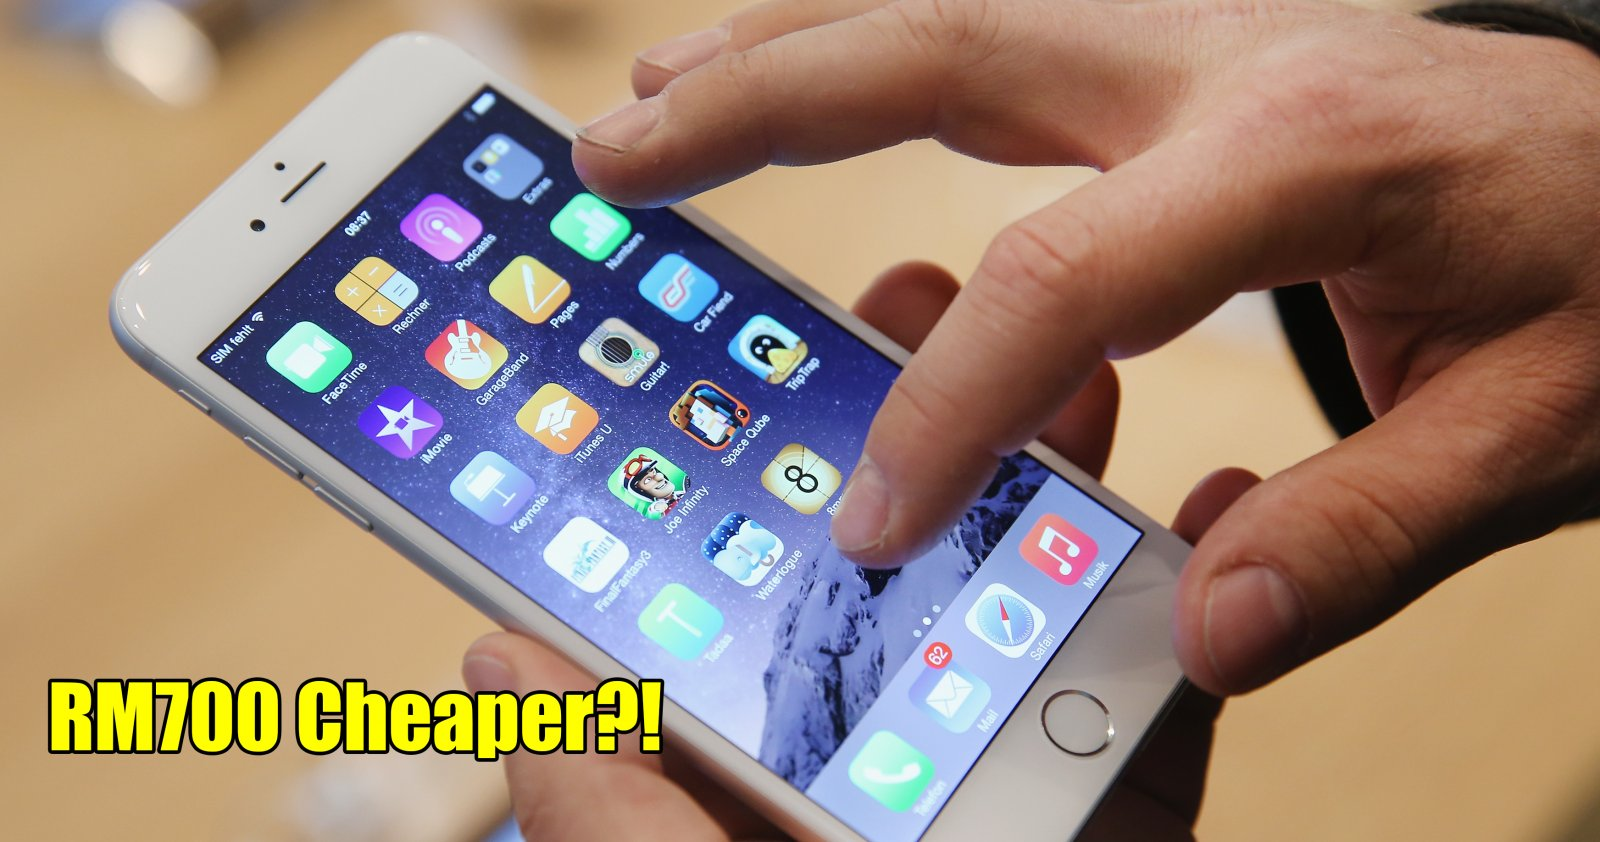 You Can Now Buy an iPhone 6 for RM700 Cheaper Than Its Original Price in Malaysia! - WORLD OF BUZZ